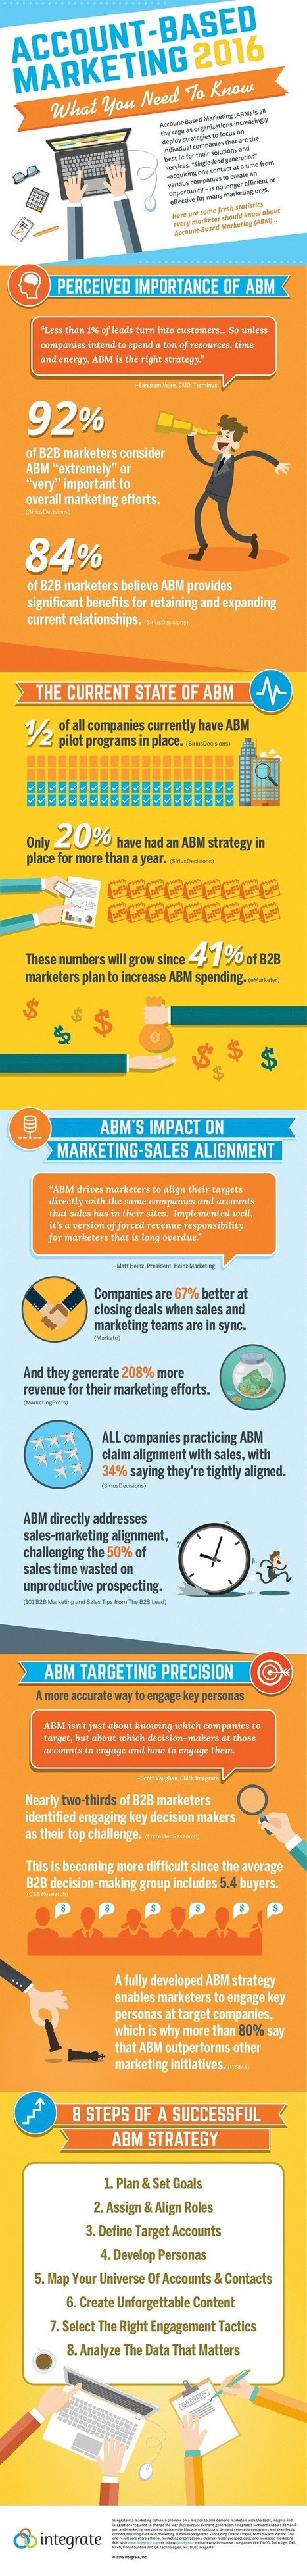 What You Need to Know About Account-Based Marketing #Infographic | The Twinkie Awards | Scoop.it